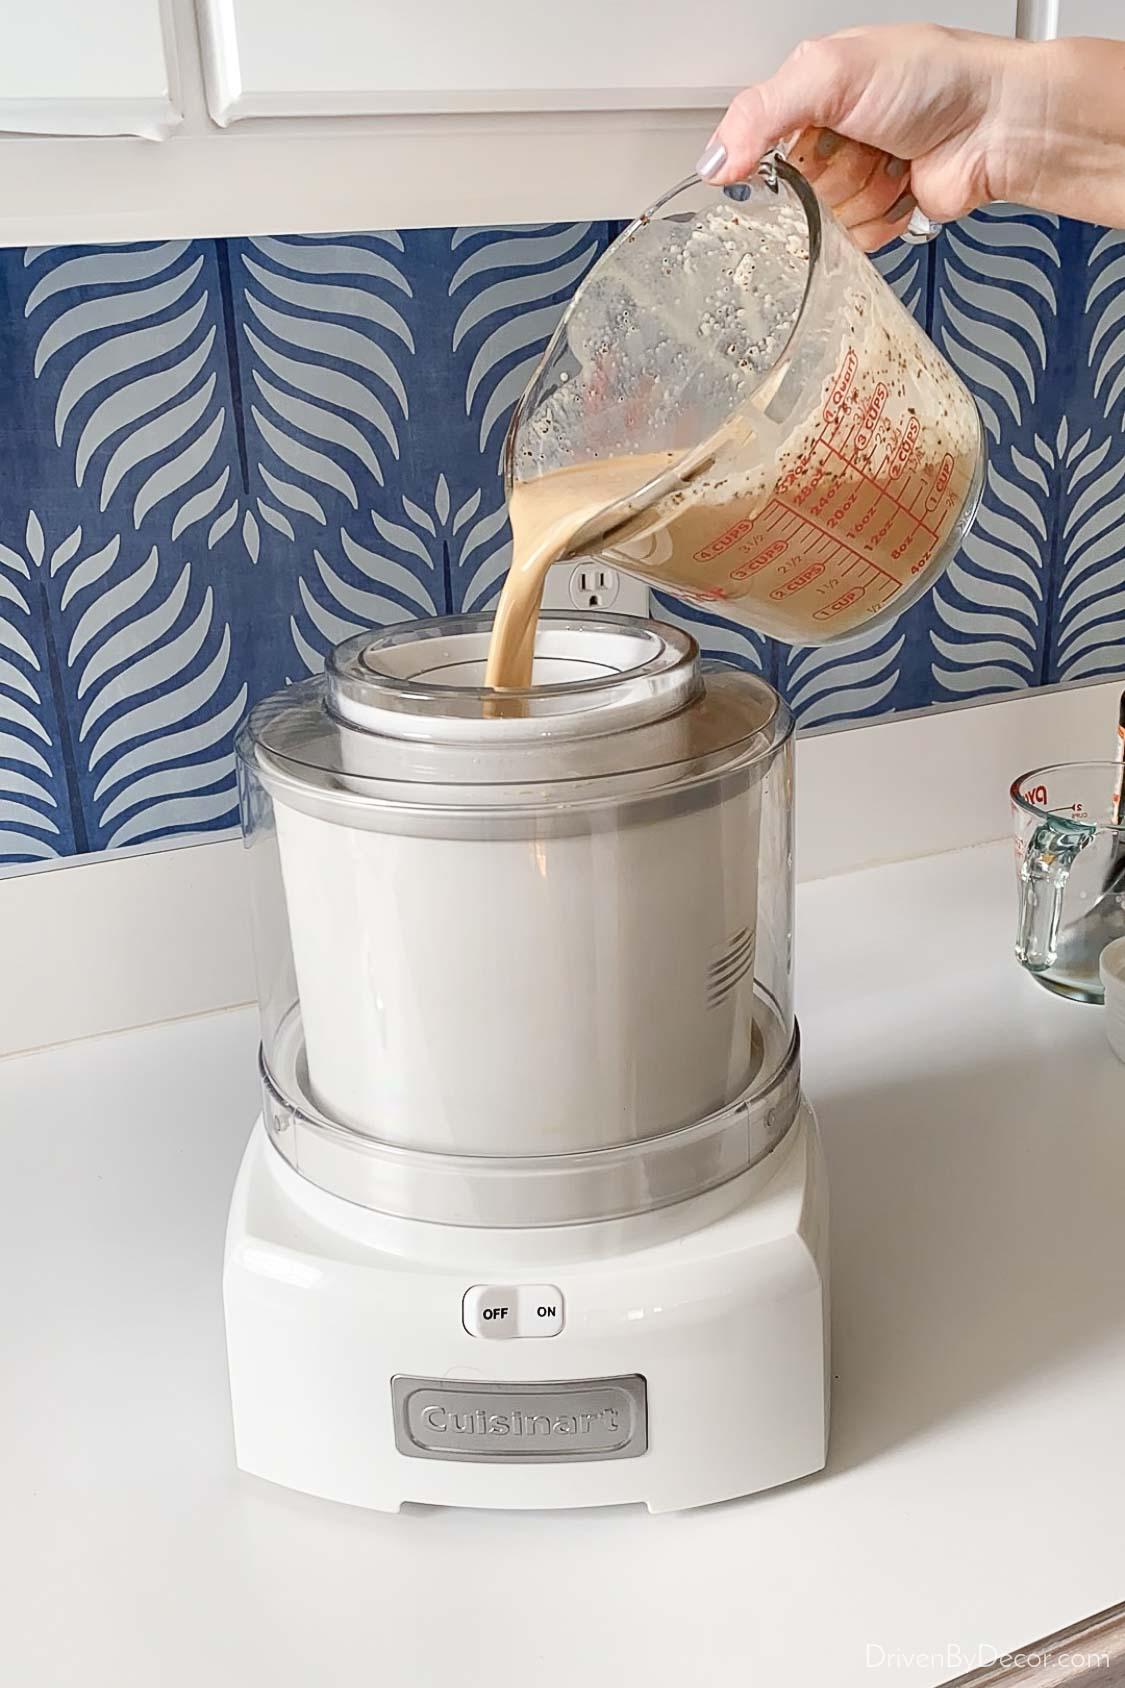 This ice cream maker is a favorite small kitchen appliance!